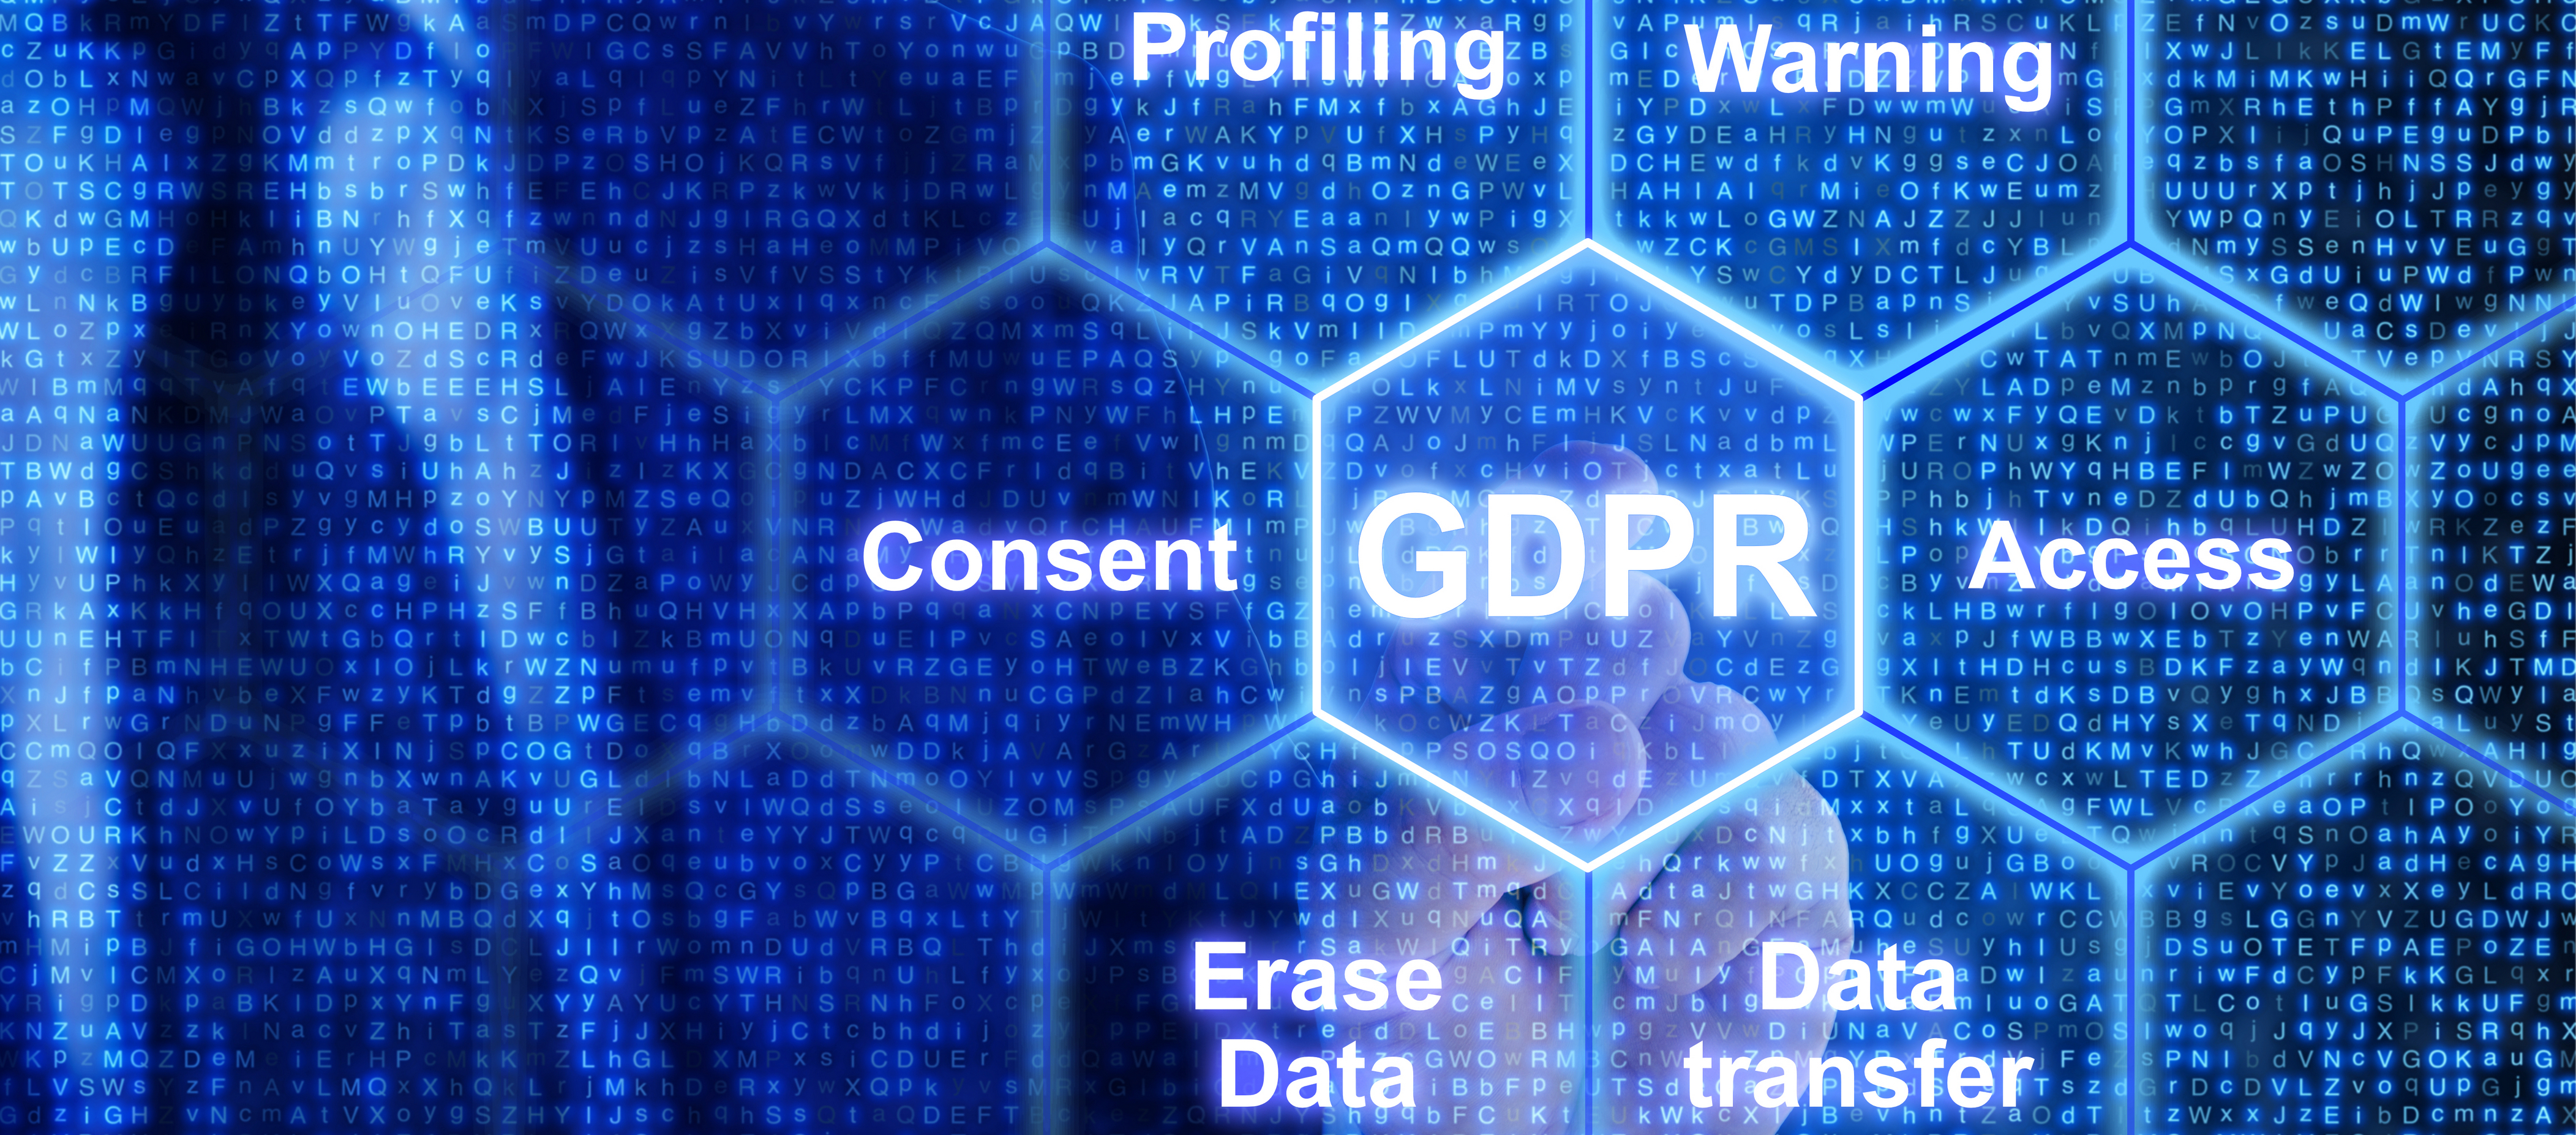 IT exppert touching a tile in a grid with GDPR keywords